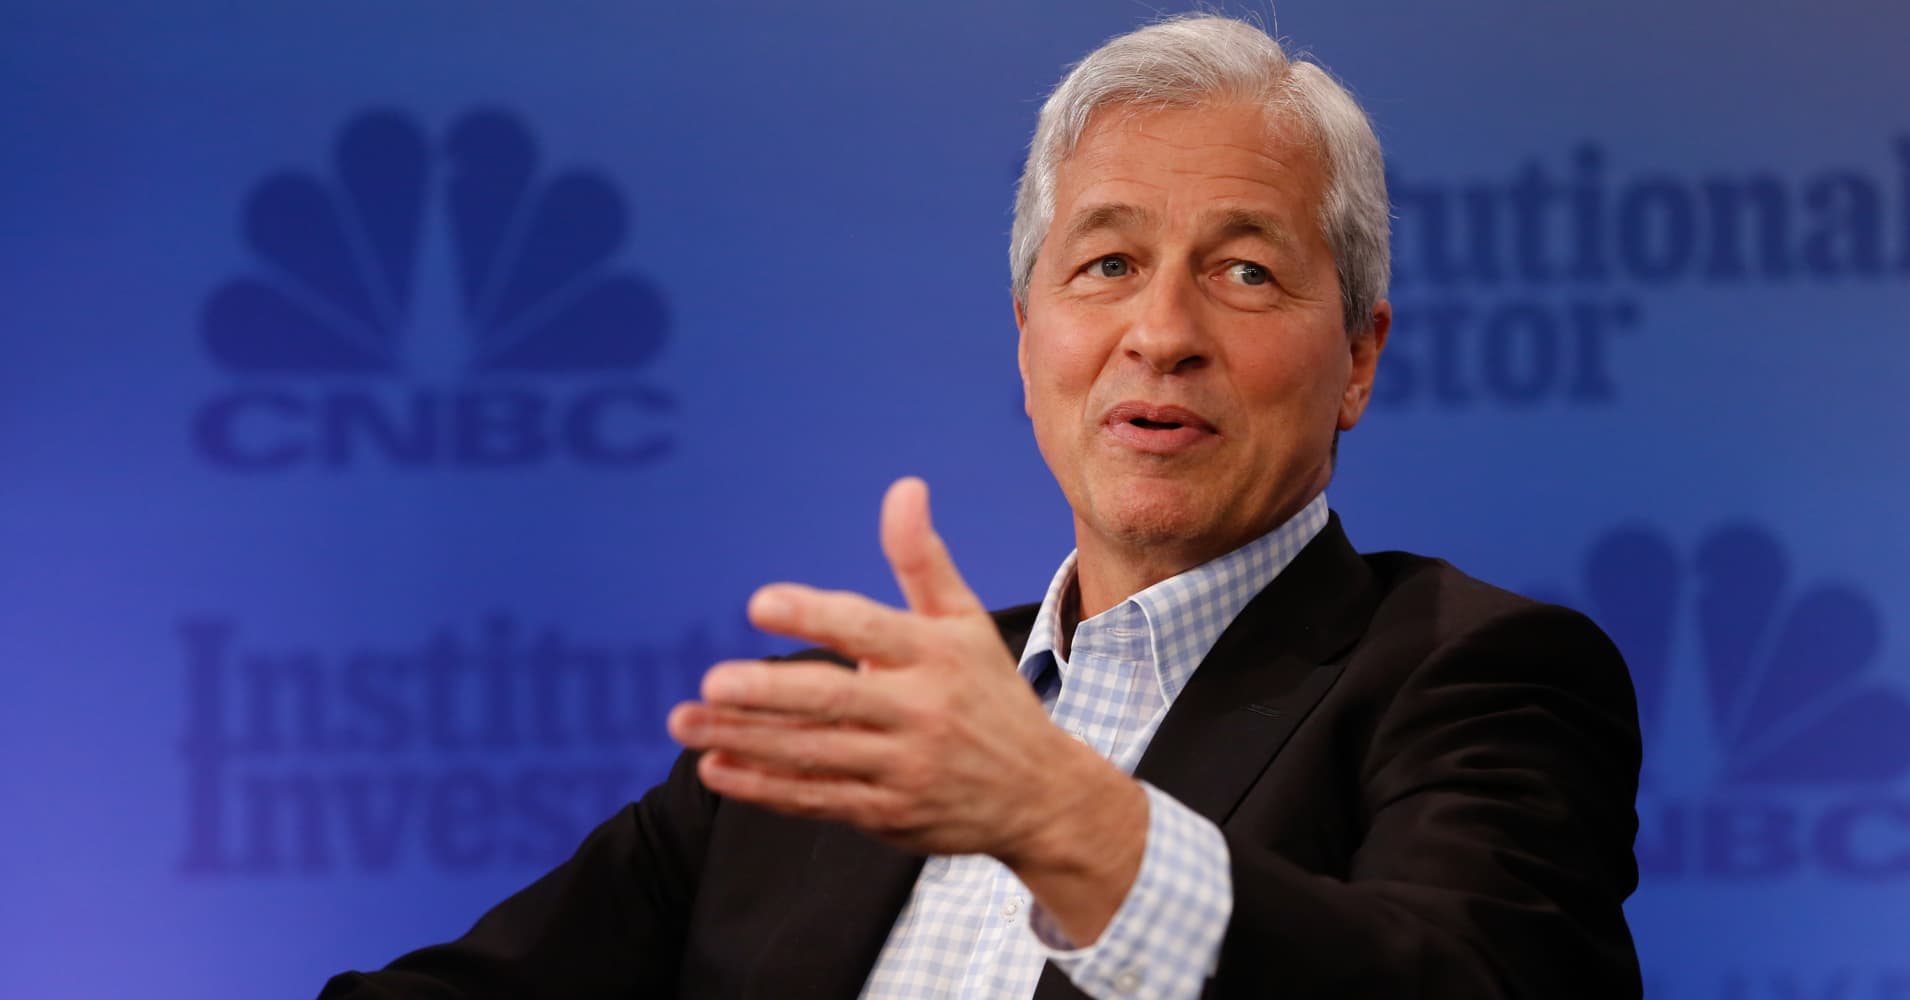 JP Morgan's Jamie Dimon makes his biggest bet on Silicon Valley with new 'fintech campus'